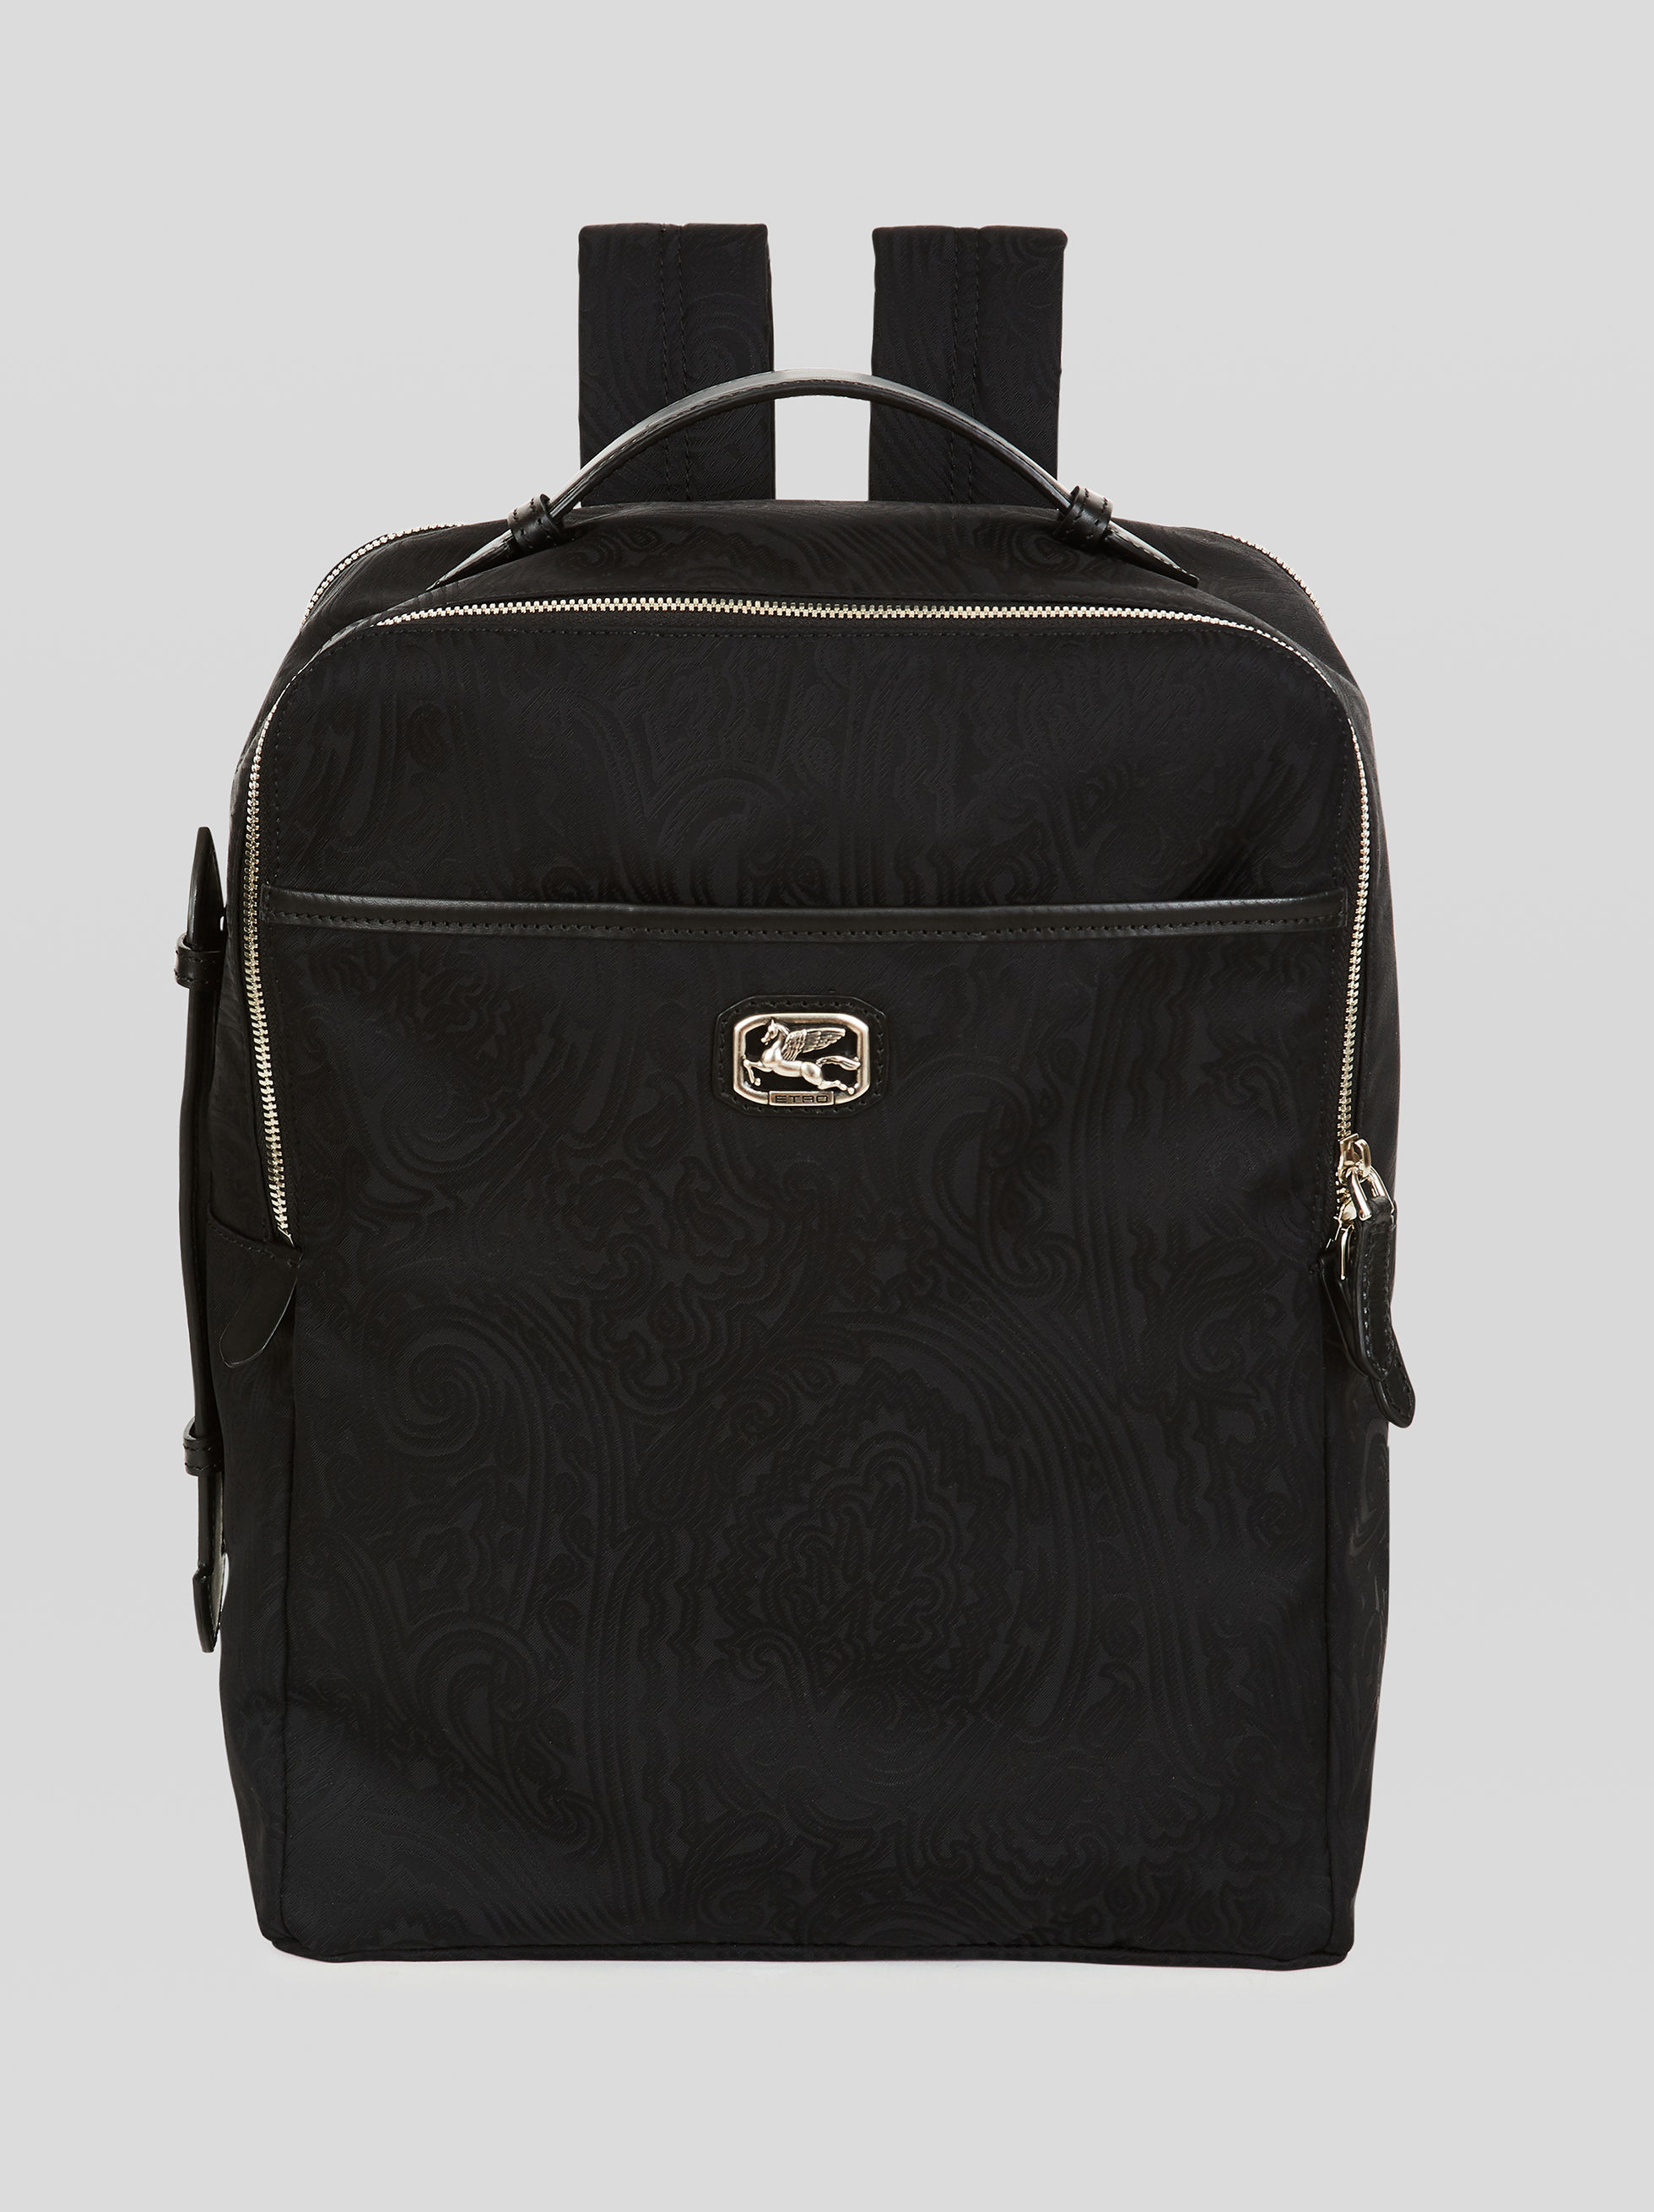 NYLON JACQUARD BACKPACK WITH PEGASO